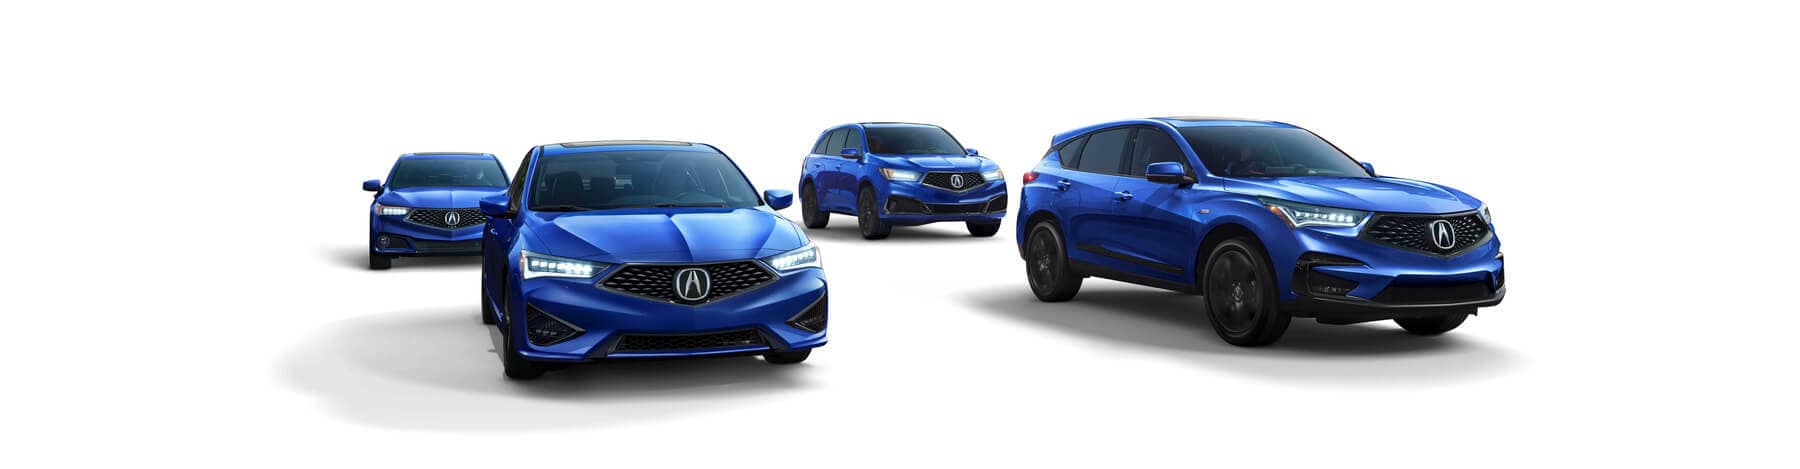 Acura All-Wheel Drive (AWD) Vehicles in Sioux Falls